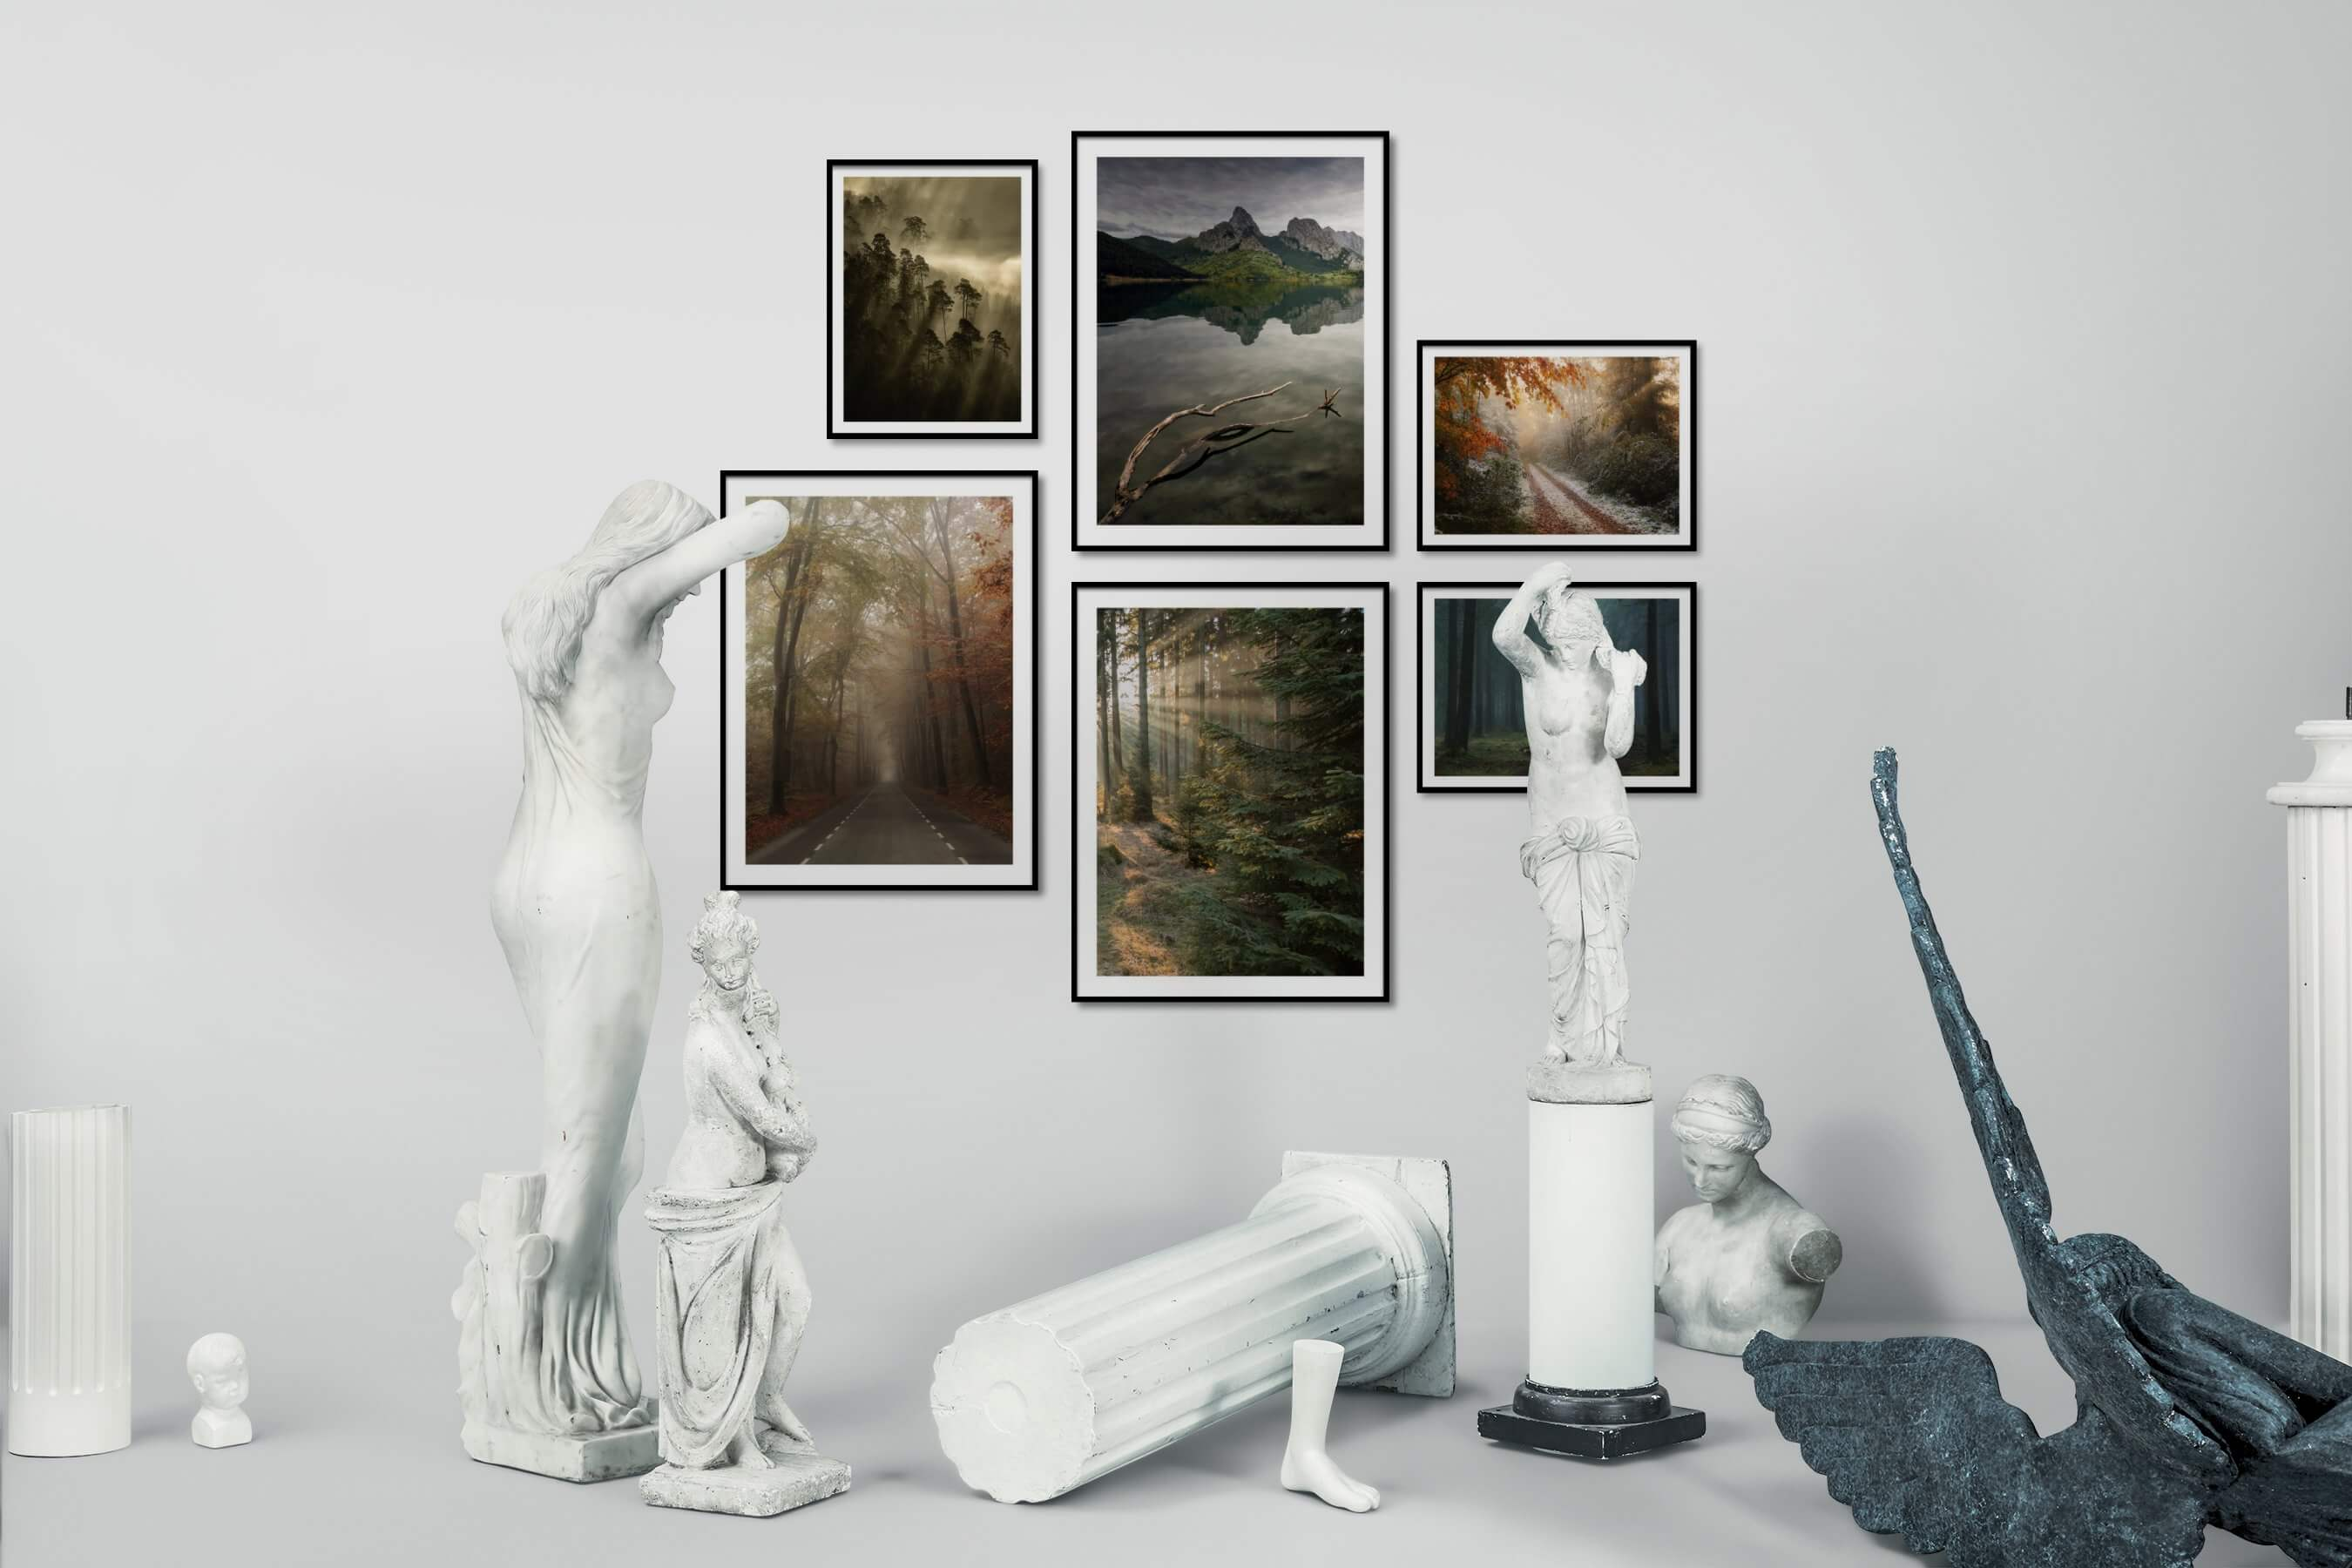 Gallery wall idea with six framed pictures arranged on a wall depicting Nature